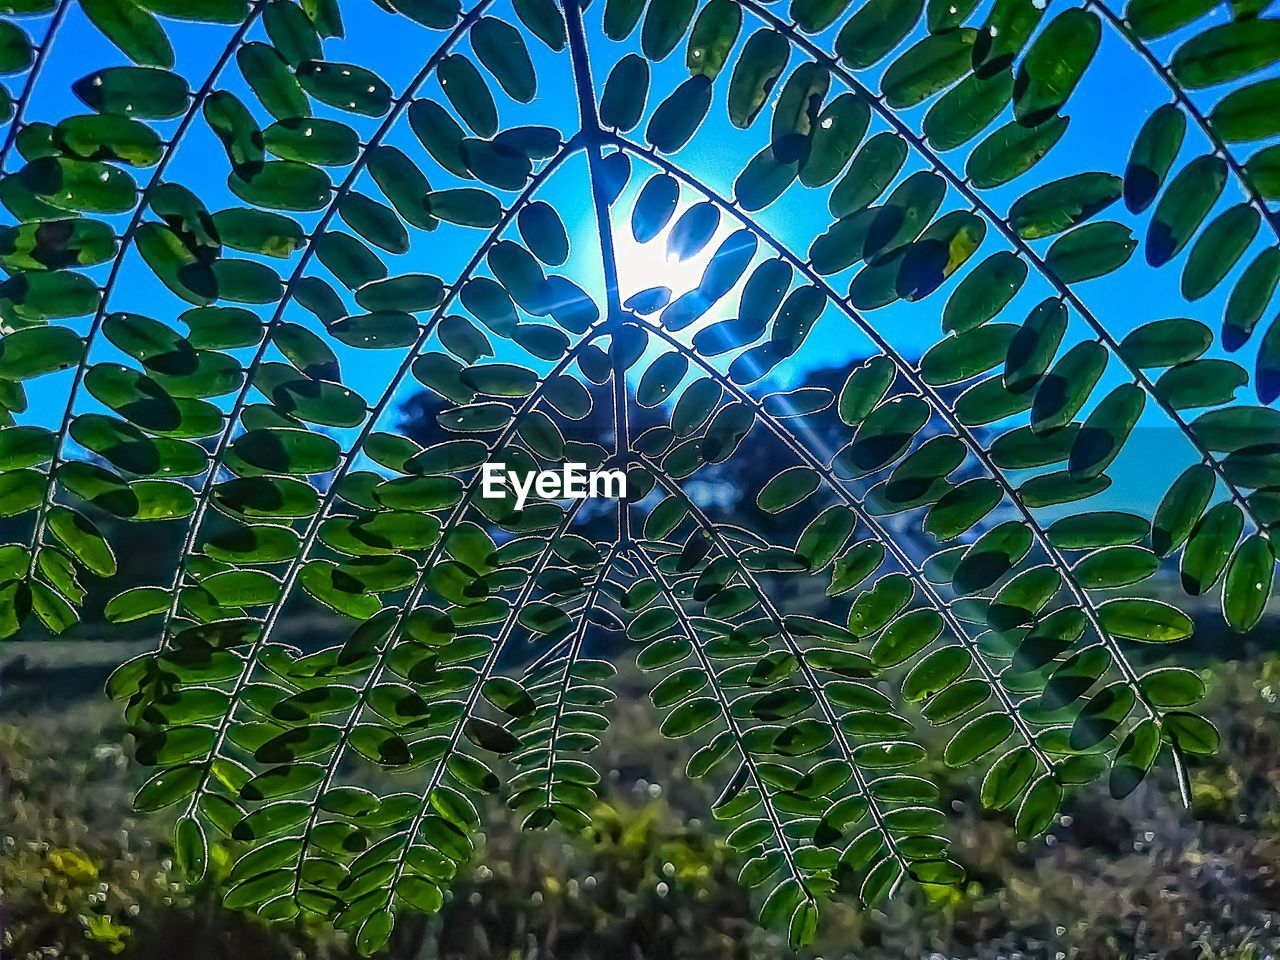 growth, plant, no people, day, beauty in nature, nature, leaf, green color, plant part, close-up, tree, sunlight, outdoors, pattern, natural pattern, tranquility, low angle view, sky, fragility, spider web